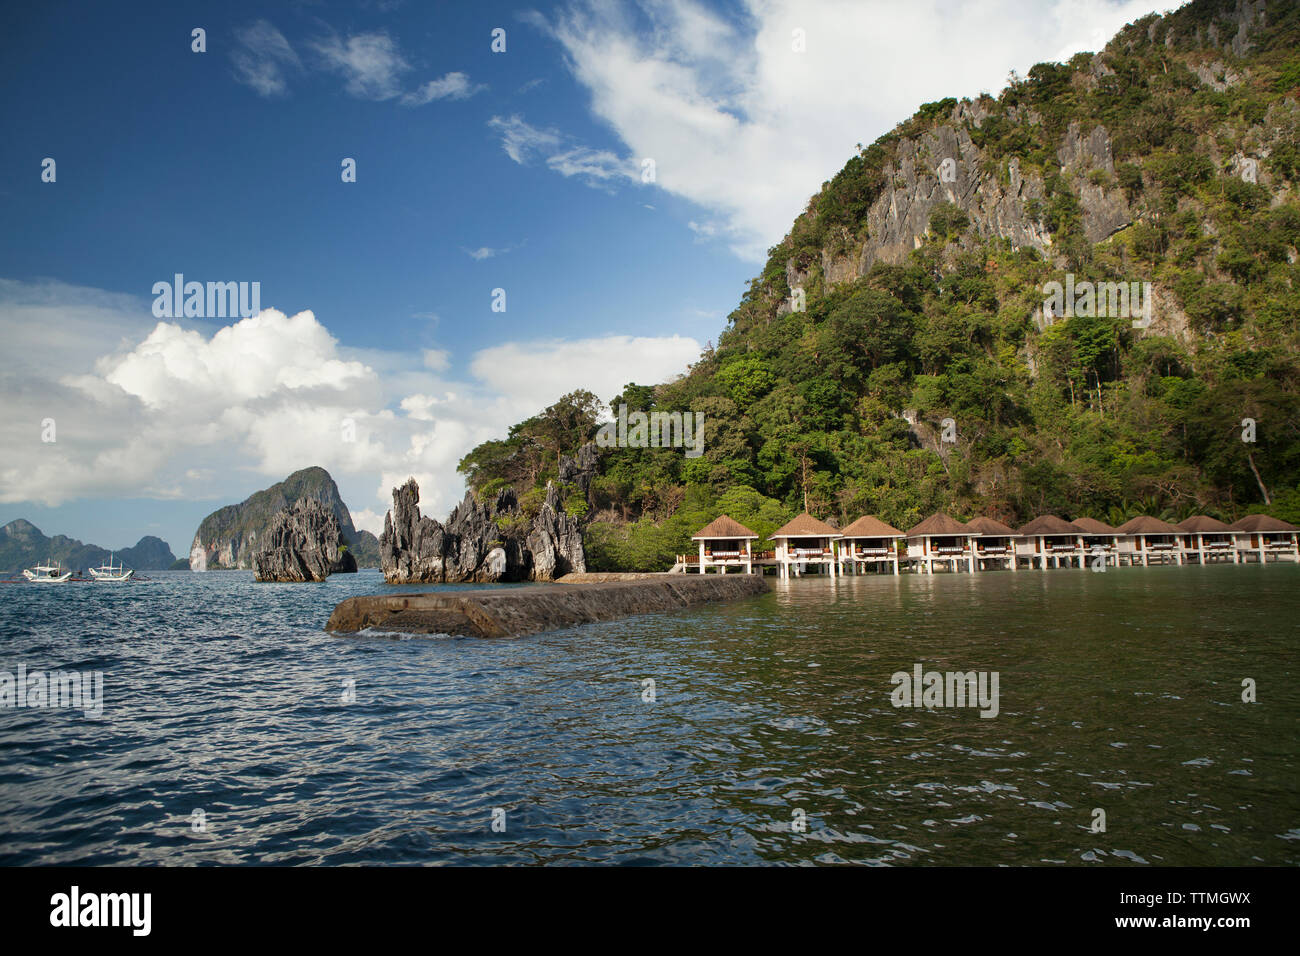 PHILIPPINES, Palawan, El Nido, Lagen Island, view of surrounding rock formations, a fishing boat and Lagen Island Resort cottages in Bacuit Bay in the - Stock Image